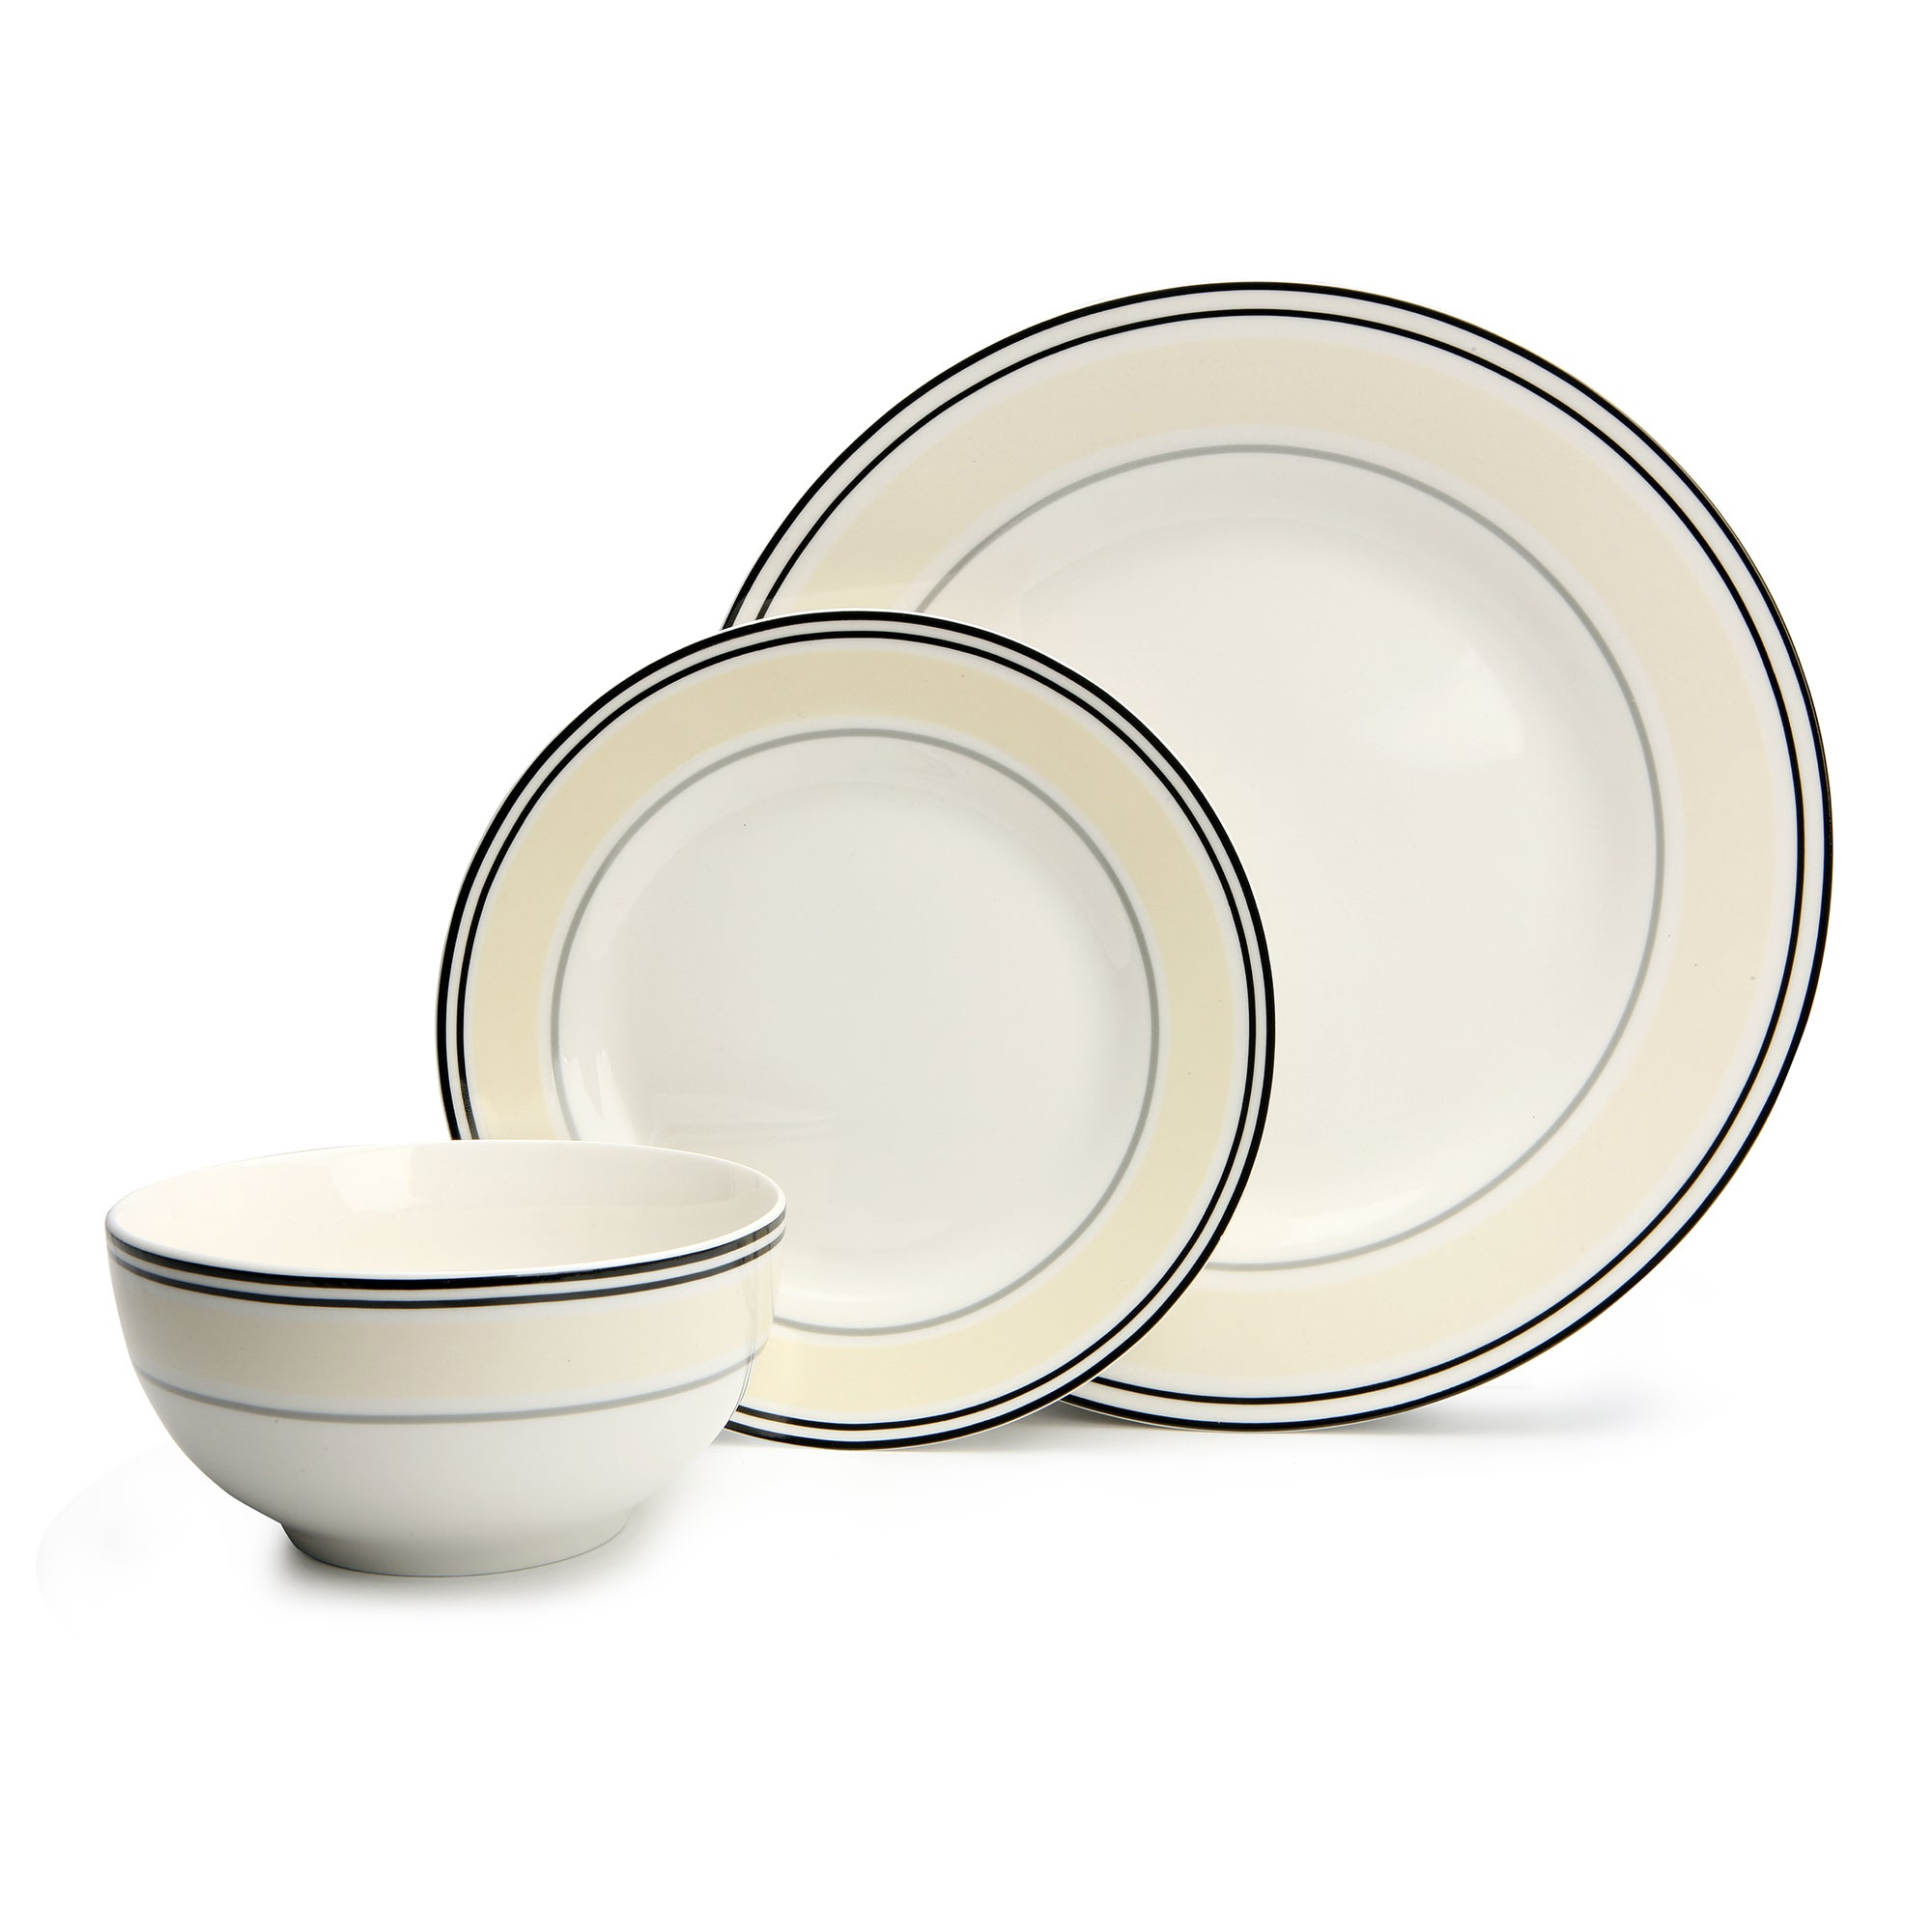 City Stripe Collection 12 Piece Dinner Set